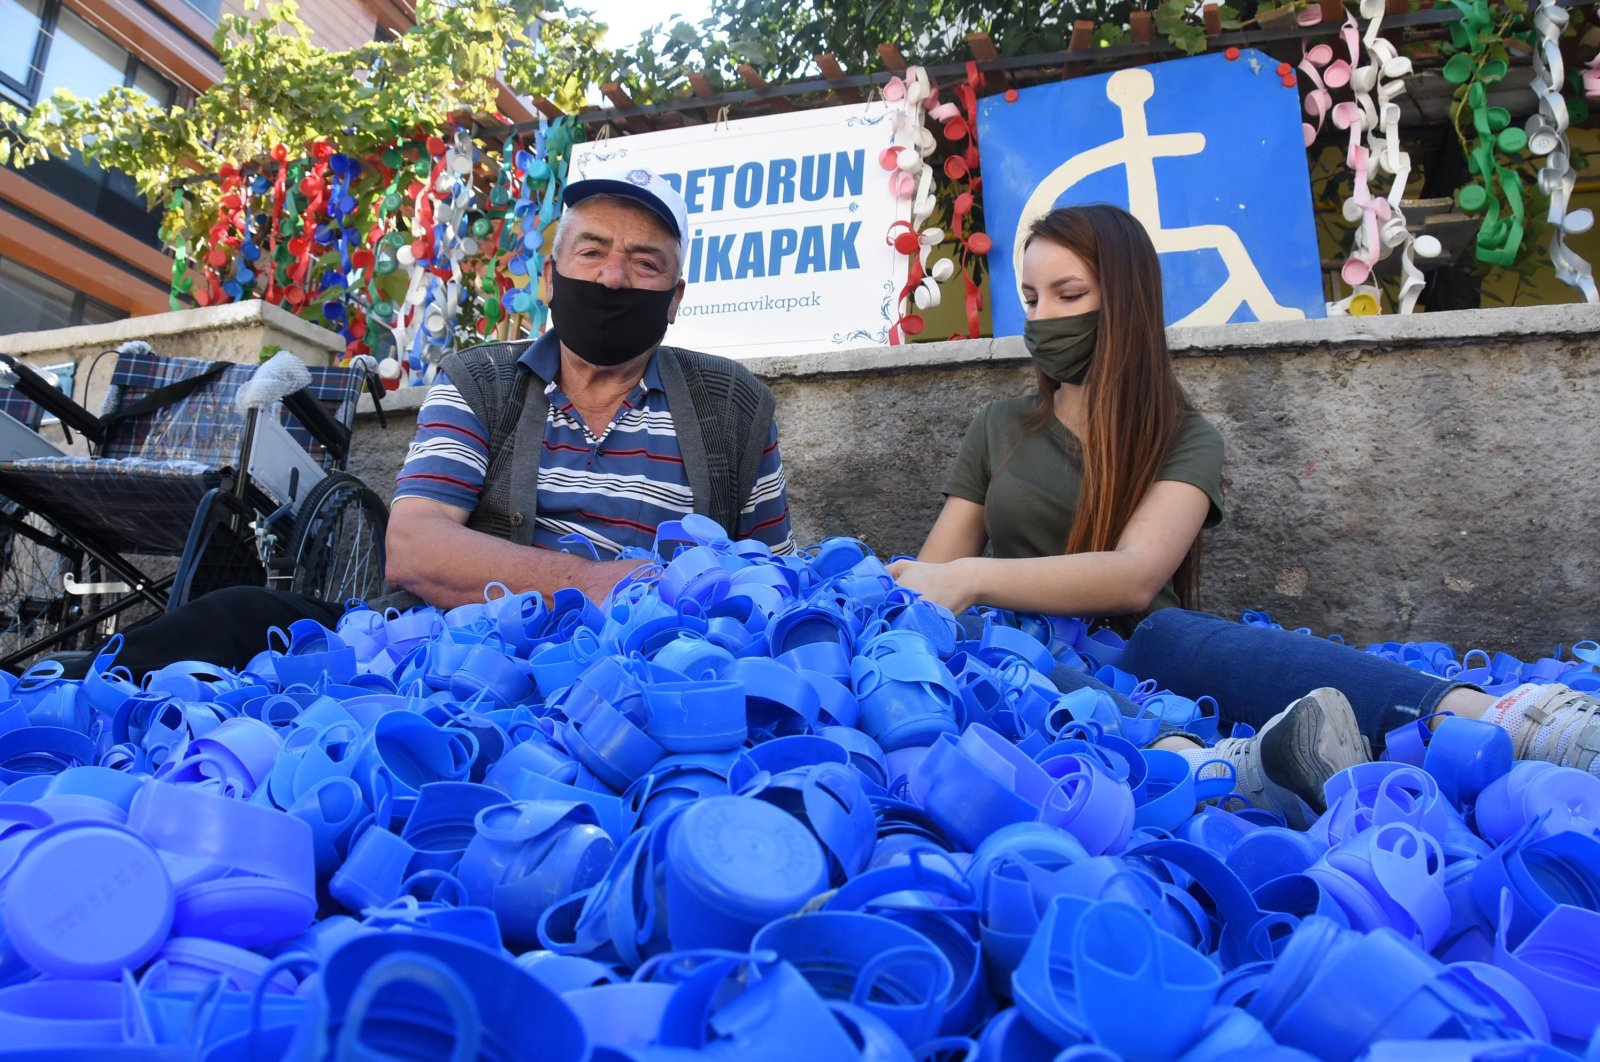 Halit Aydoğan (L) and his granddaughter Melike Sarıtaş pose with lids they collected and wheelchairs they bought, in Eskişehir, central Turkey, Sept. 13, 2020. (DHA Photo)